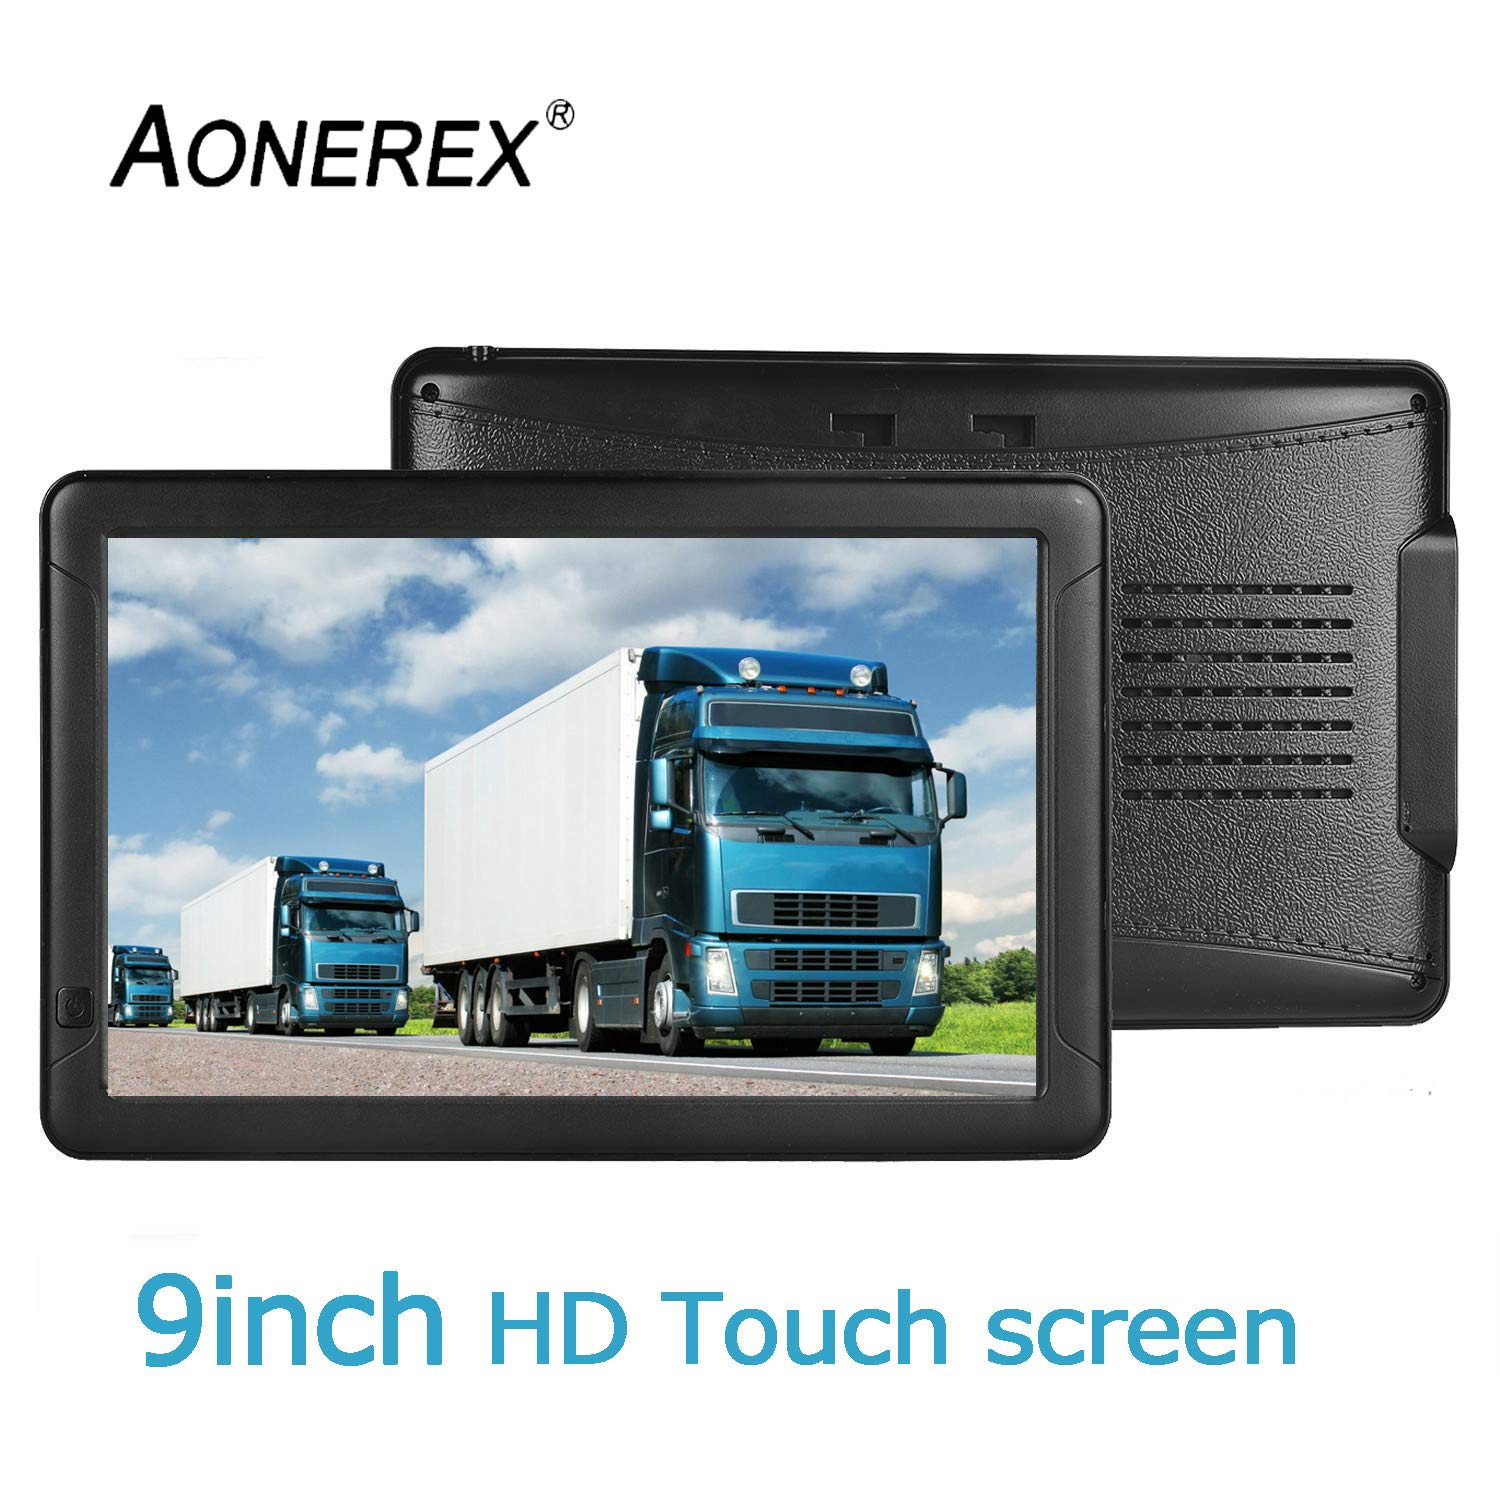 9inch HD AONEREX GPS Navigation for car/Truck Capacitive Big Touchscreen, [2019 Upgraded Version] Voice Trun-by-Turn Route Guidance, Speed Limit Reminder Free Lifetime Map Update by Aonerex